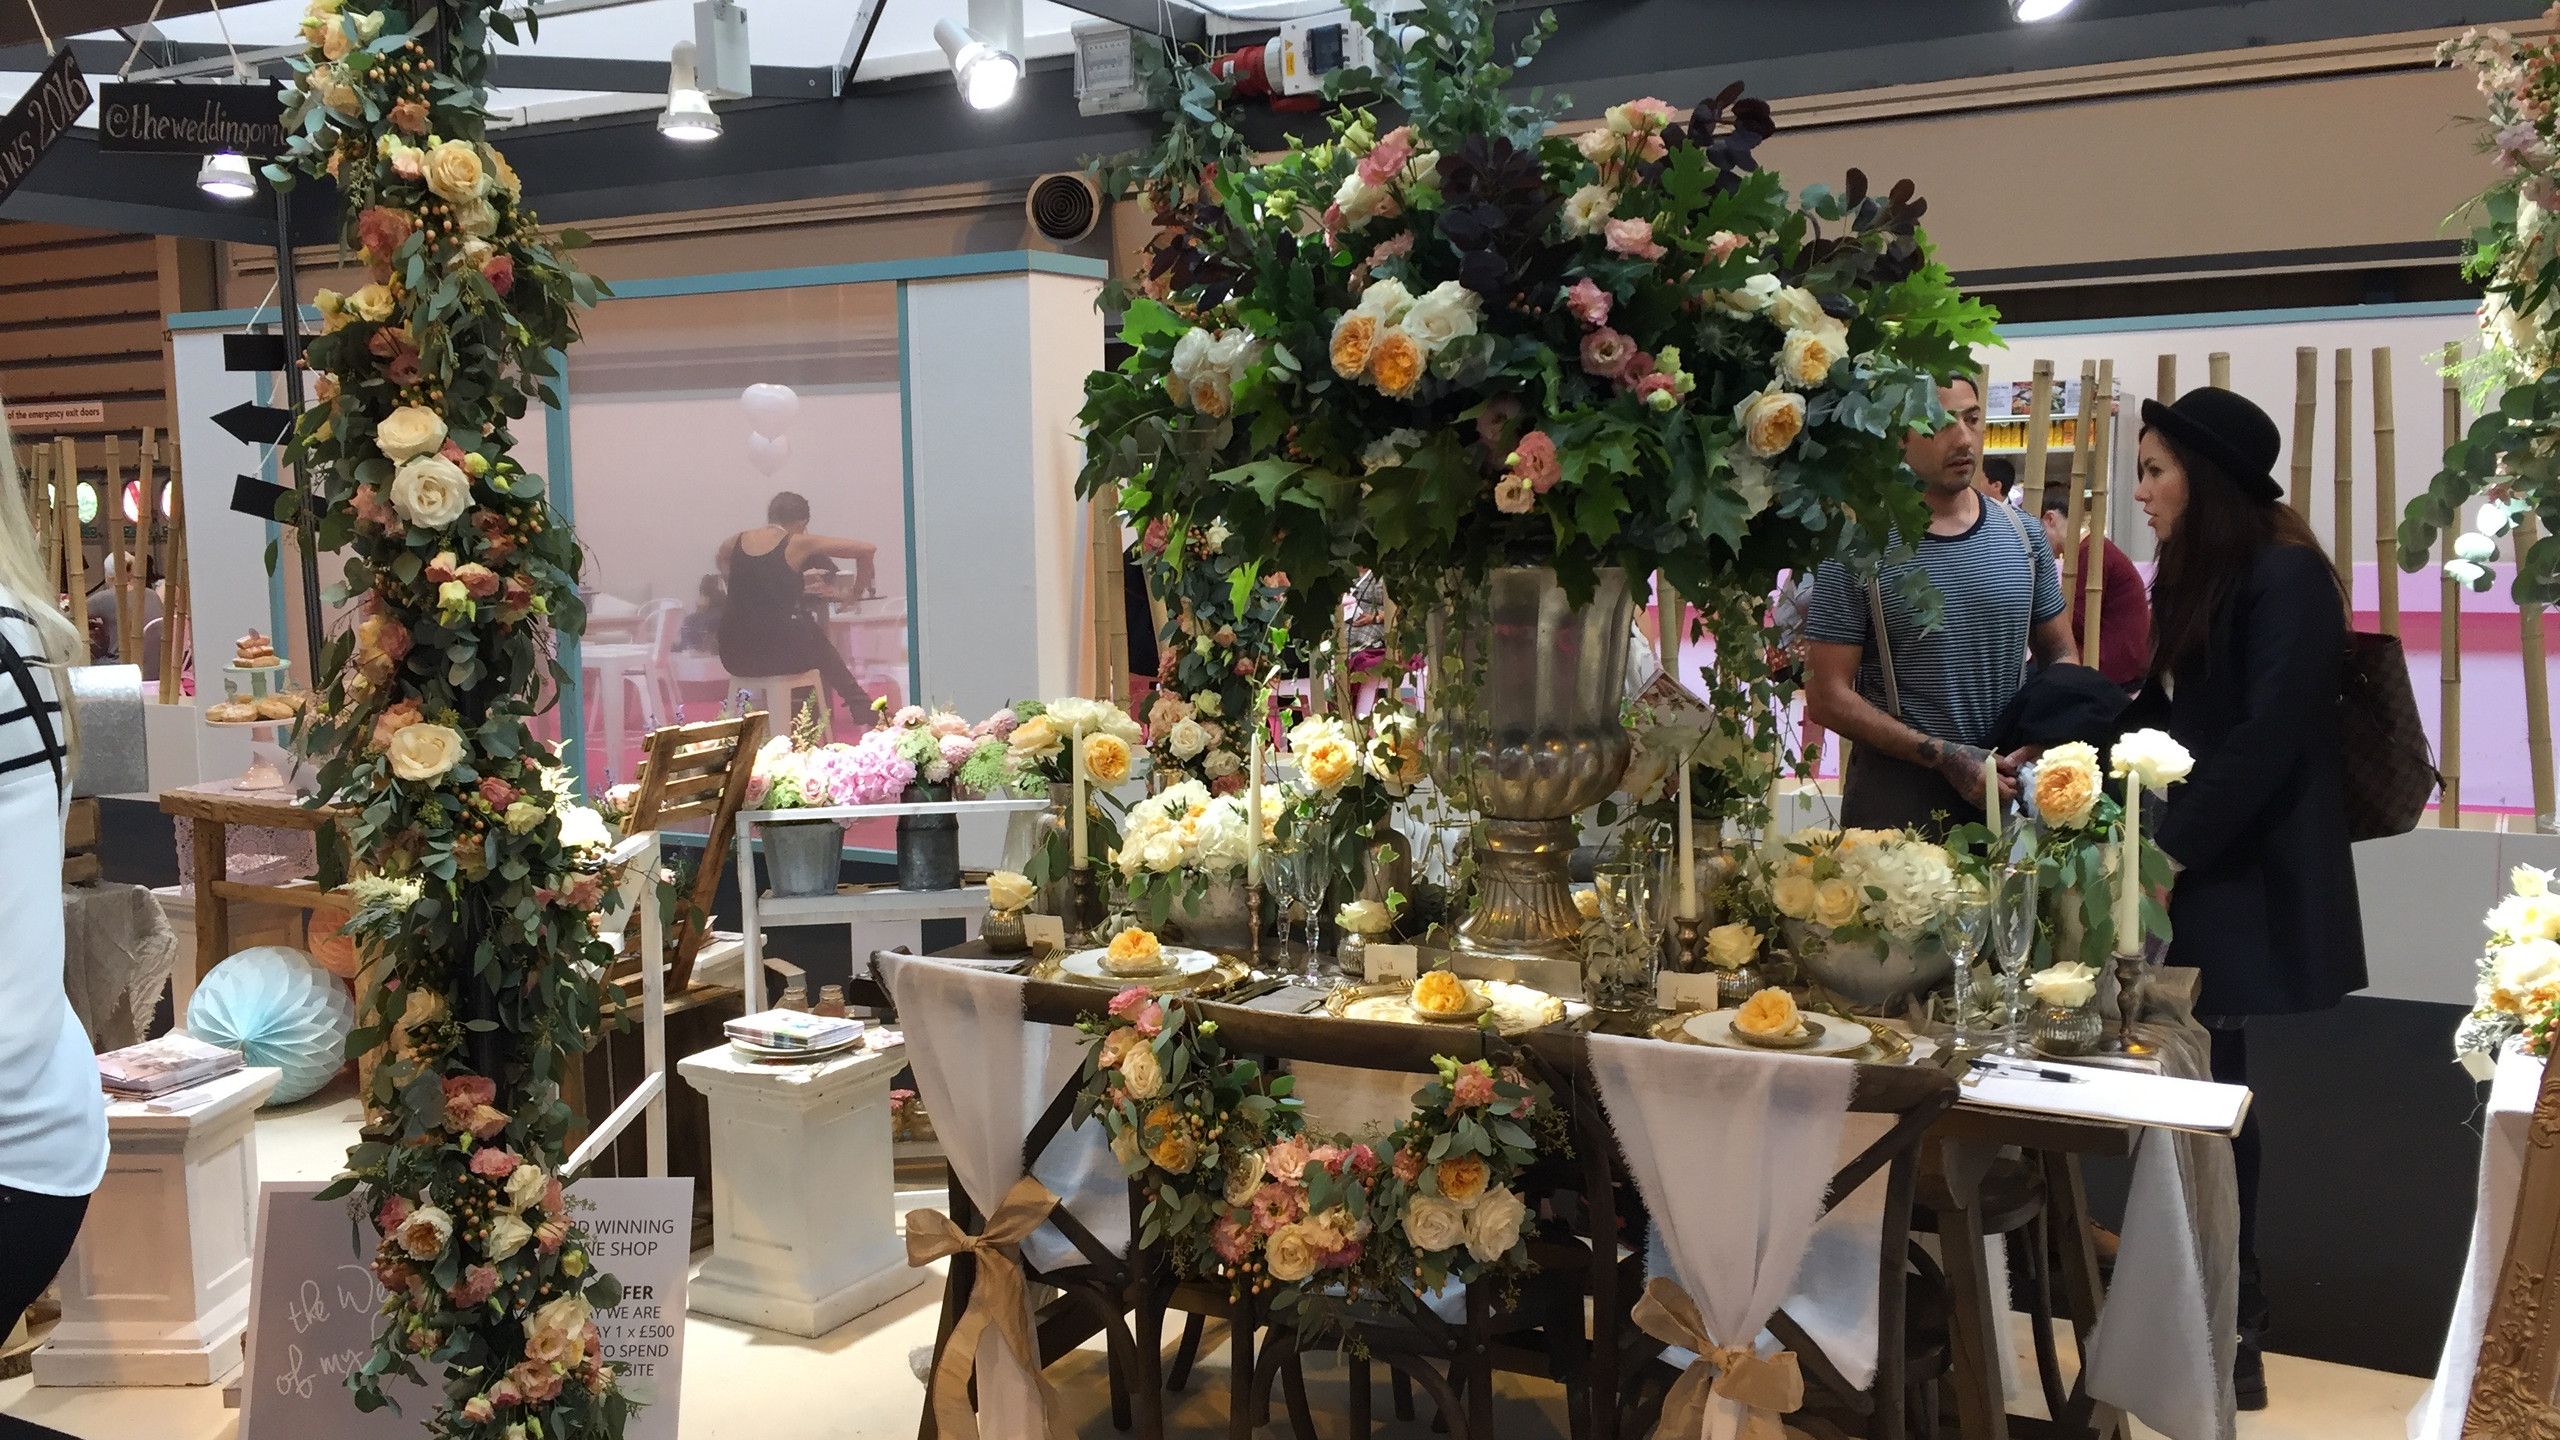 A tablesetting fit for Chatsworth (and smelling fabulous) from Passion for Flowers